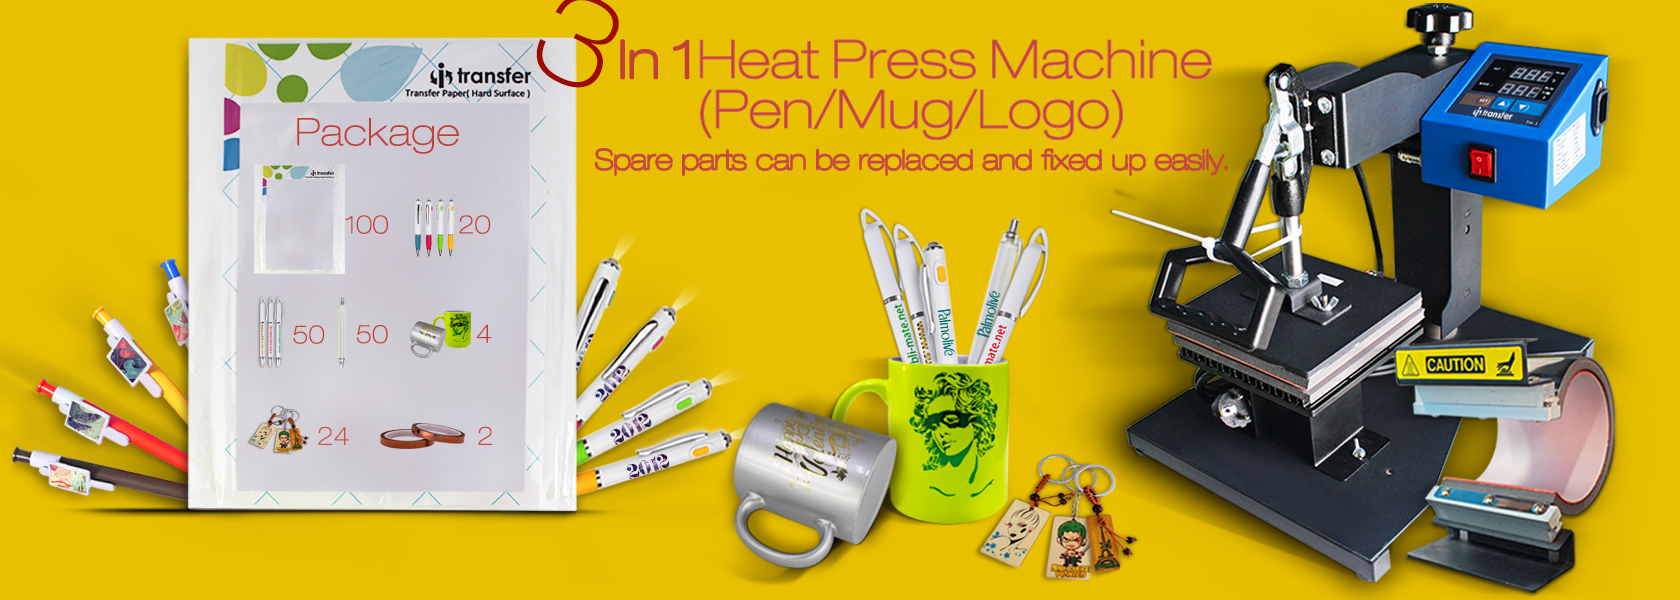 I-transfer 3 in 1 pen heat press printing machine package